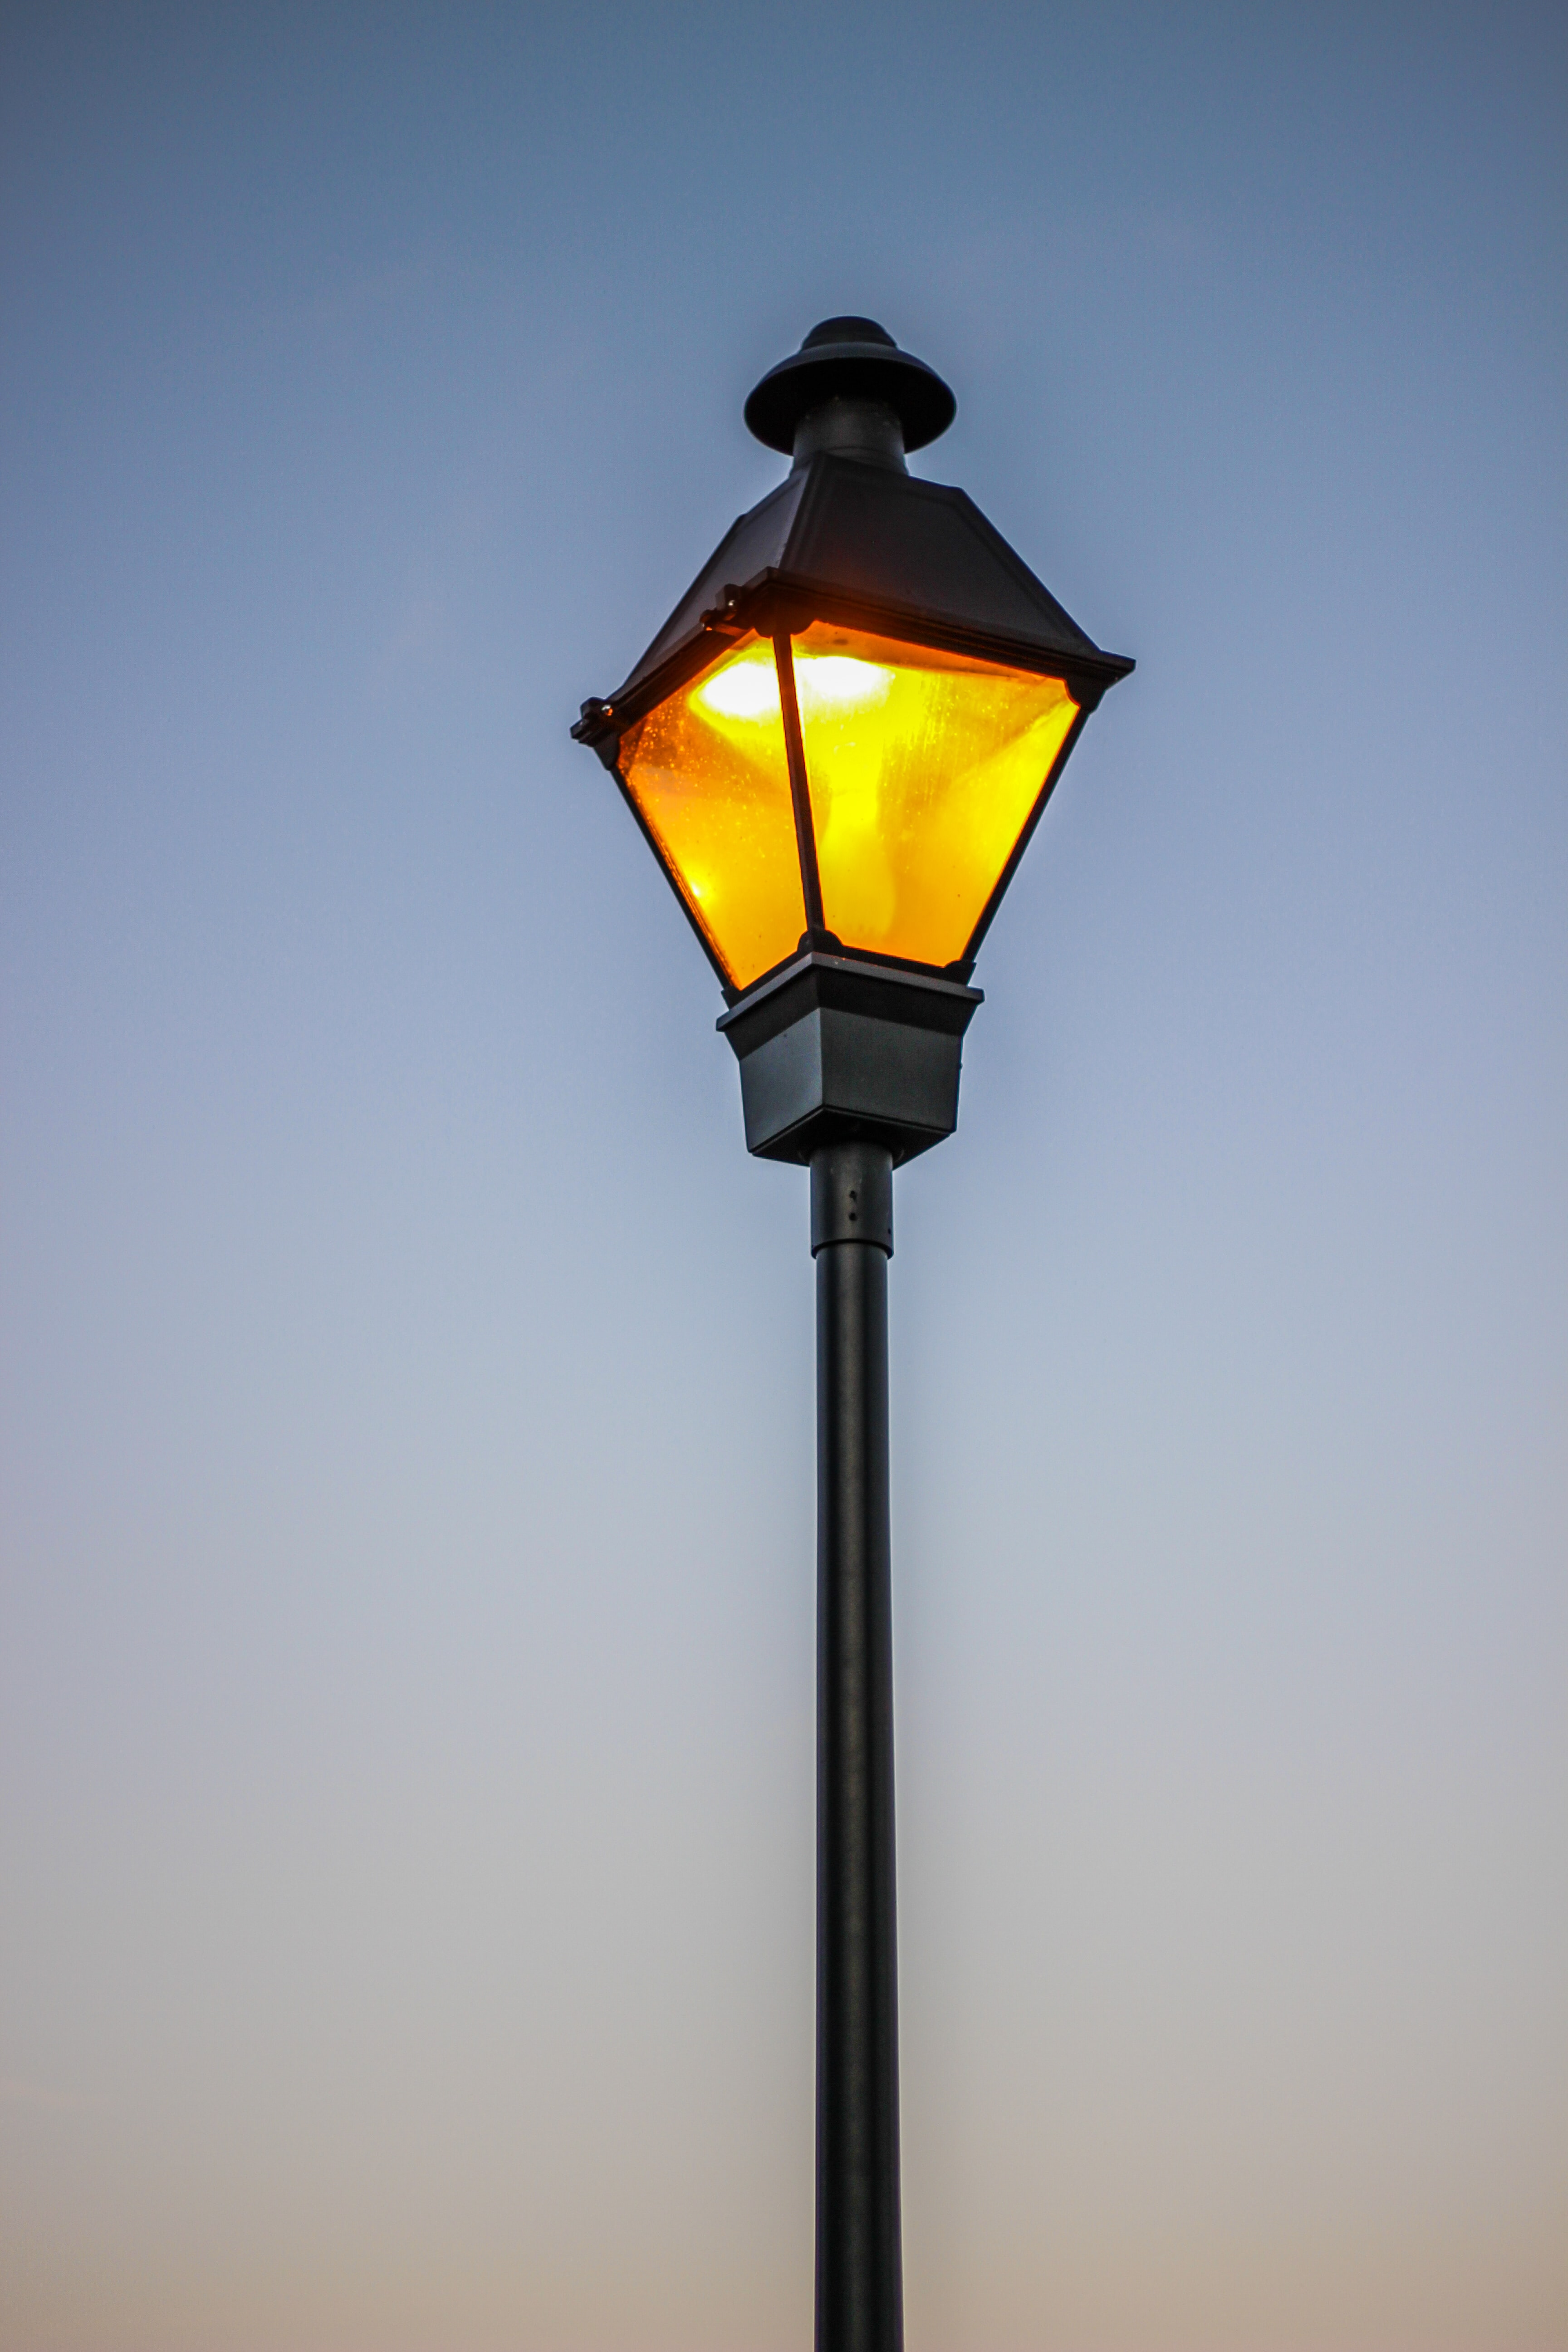 architectural photography of street lamp